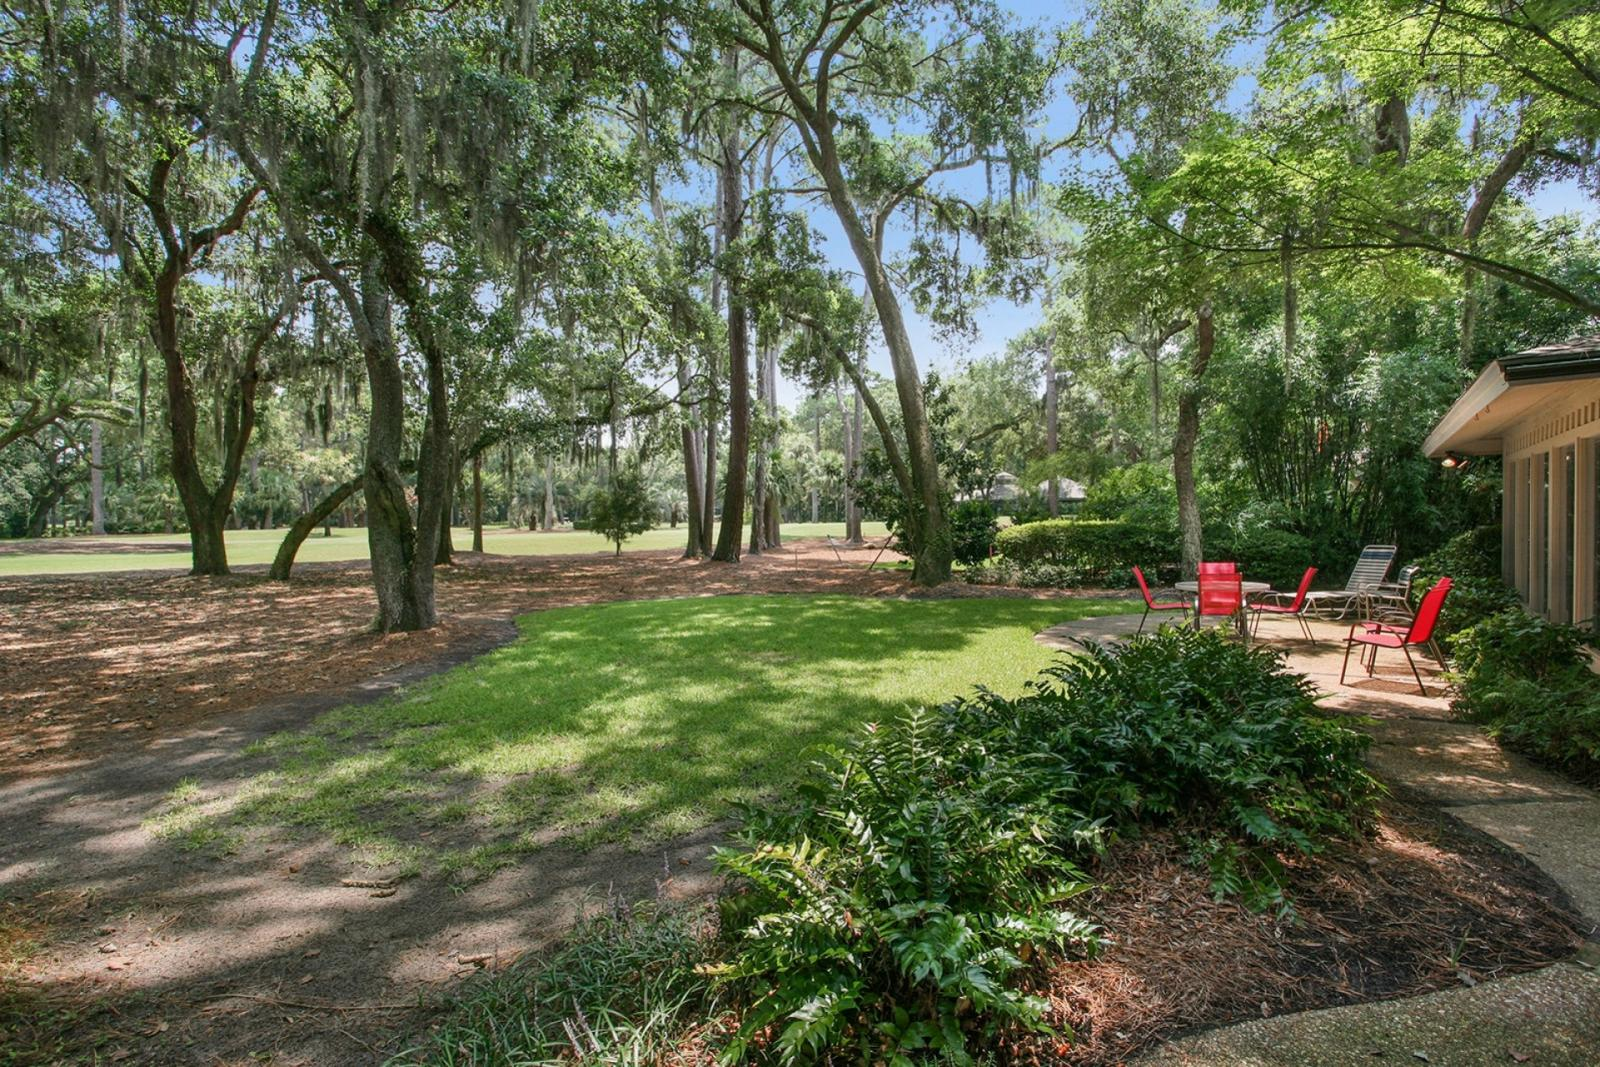 hilton head island vacation rental completely renovated